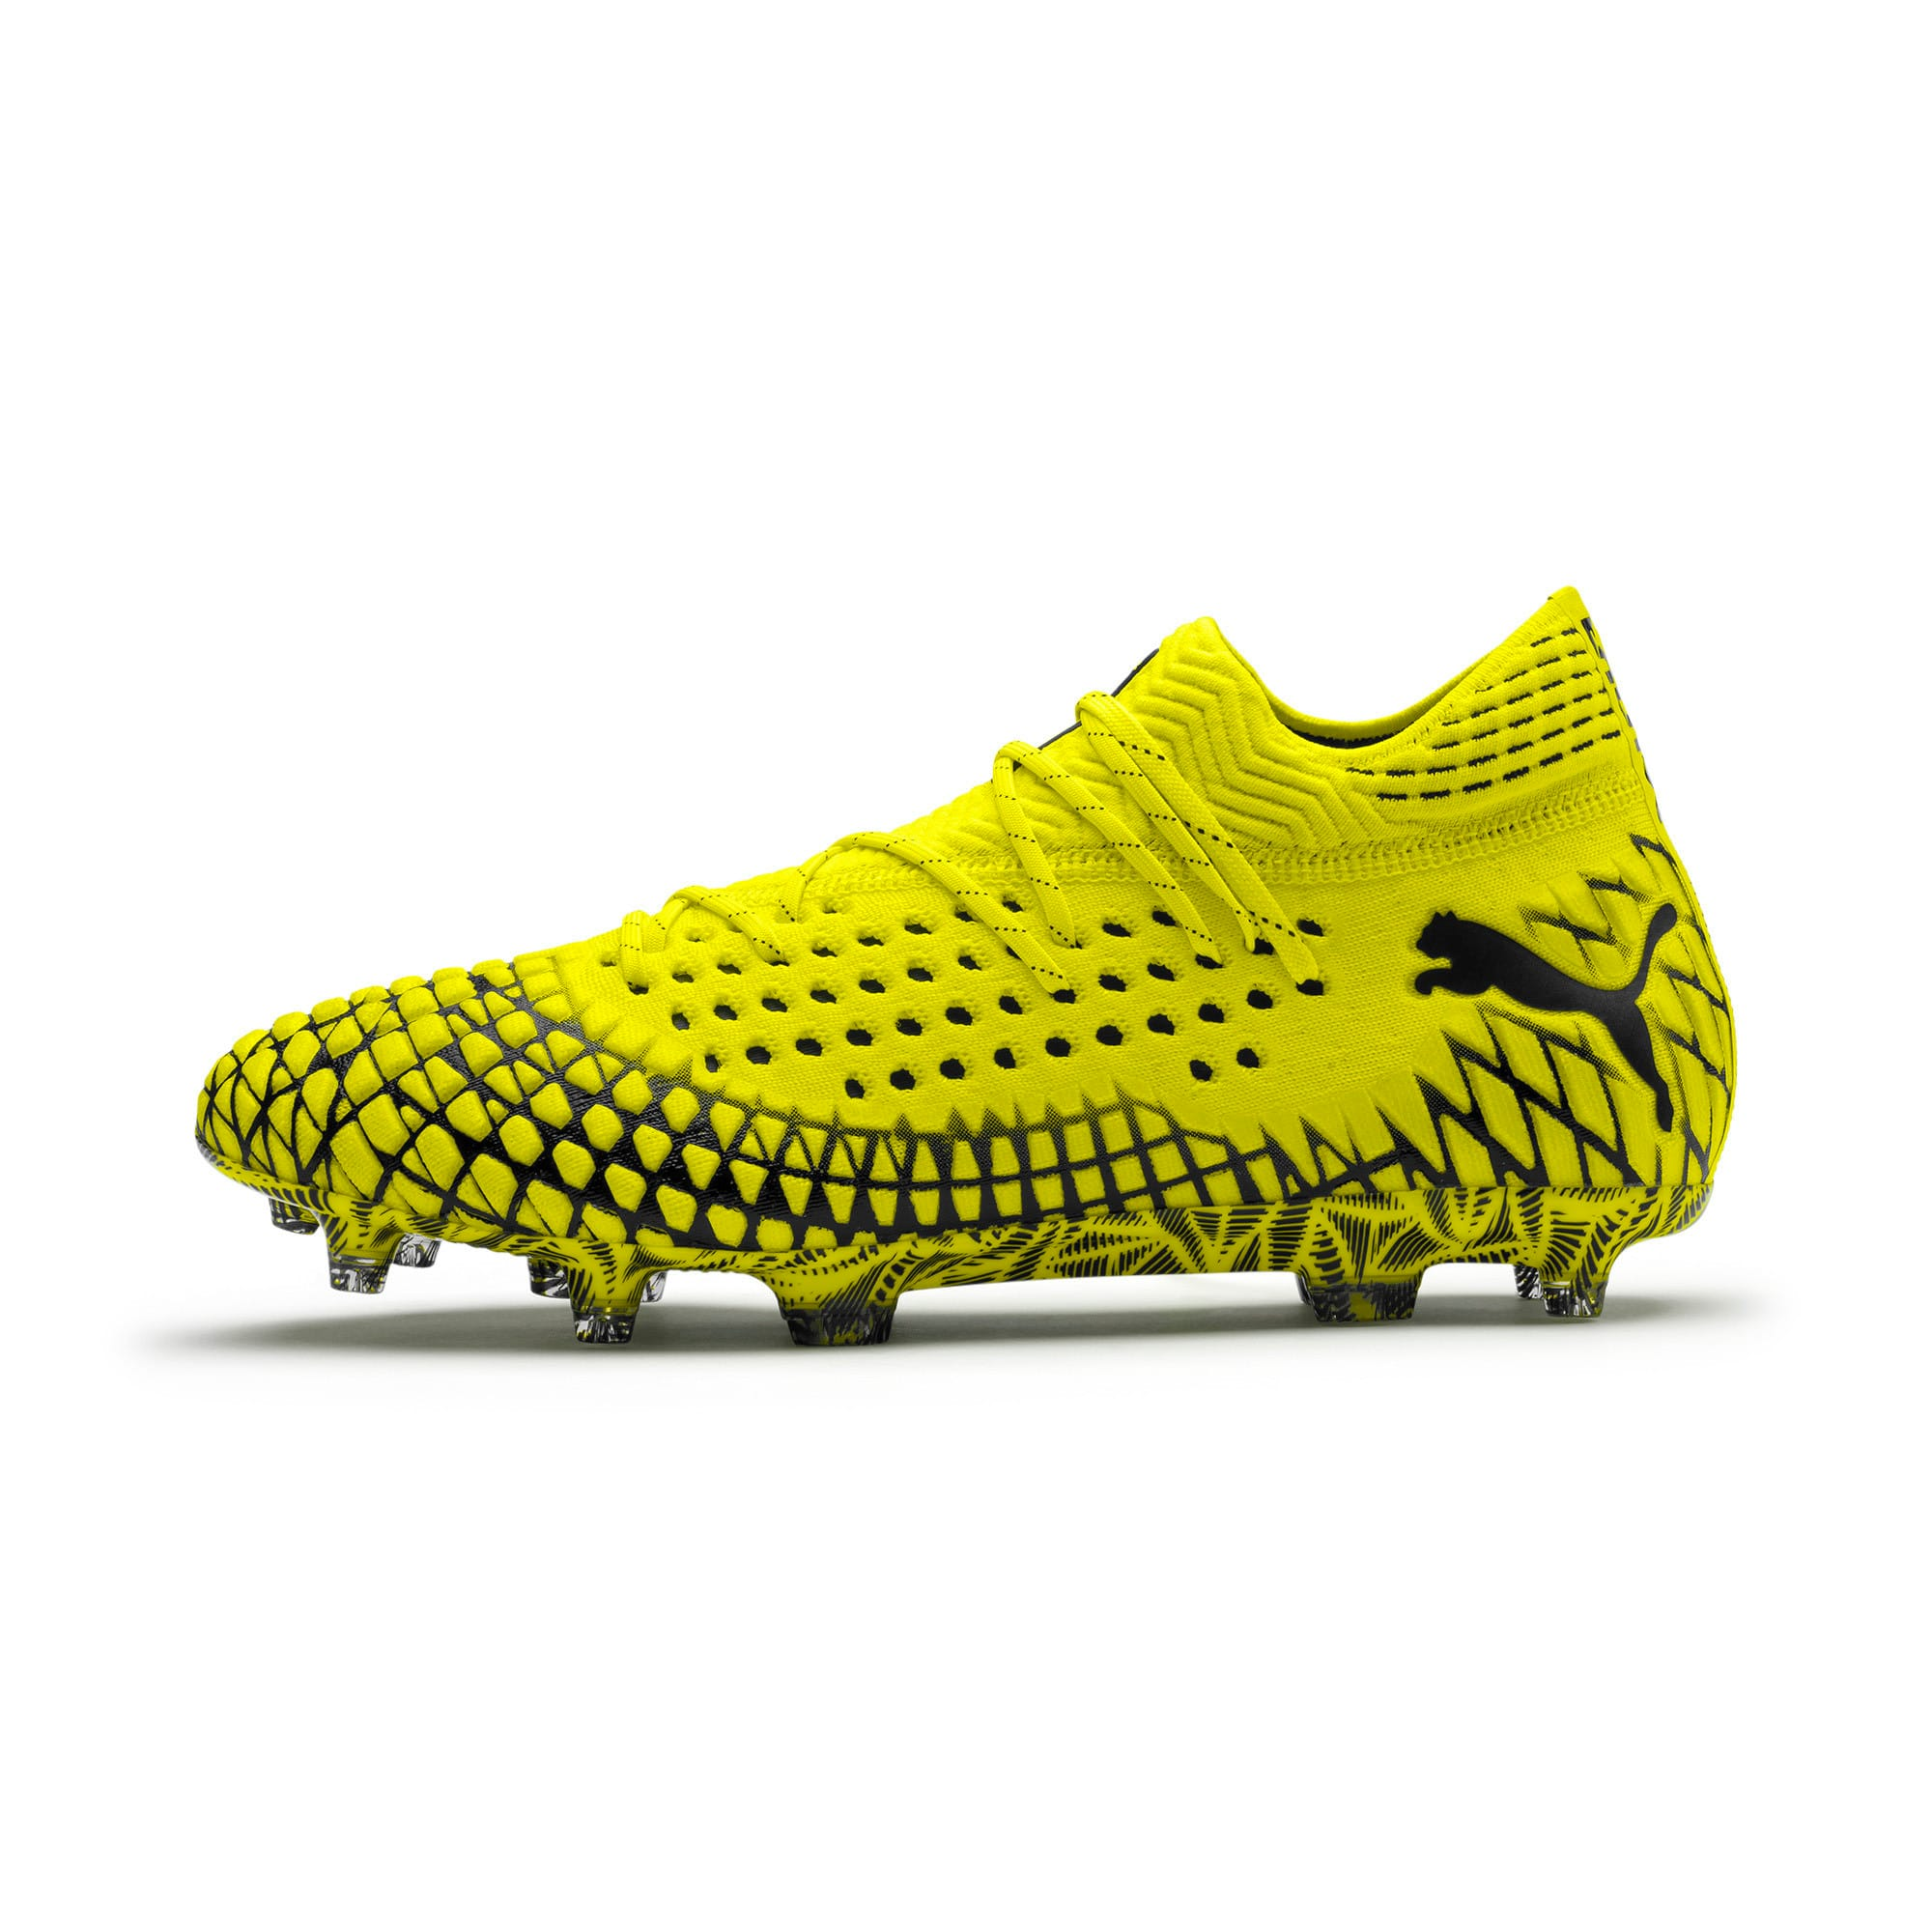 Thumbnail 1 of FUTURE 4.1 NETFIT FG/AG Men's Football Boots, Yellow Alert-Puma Black, medium